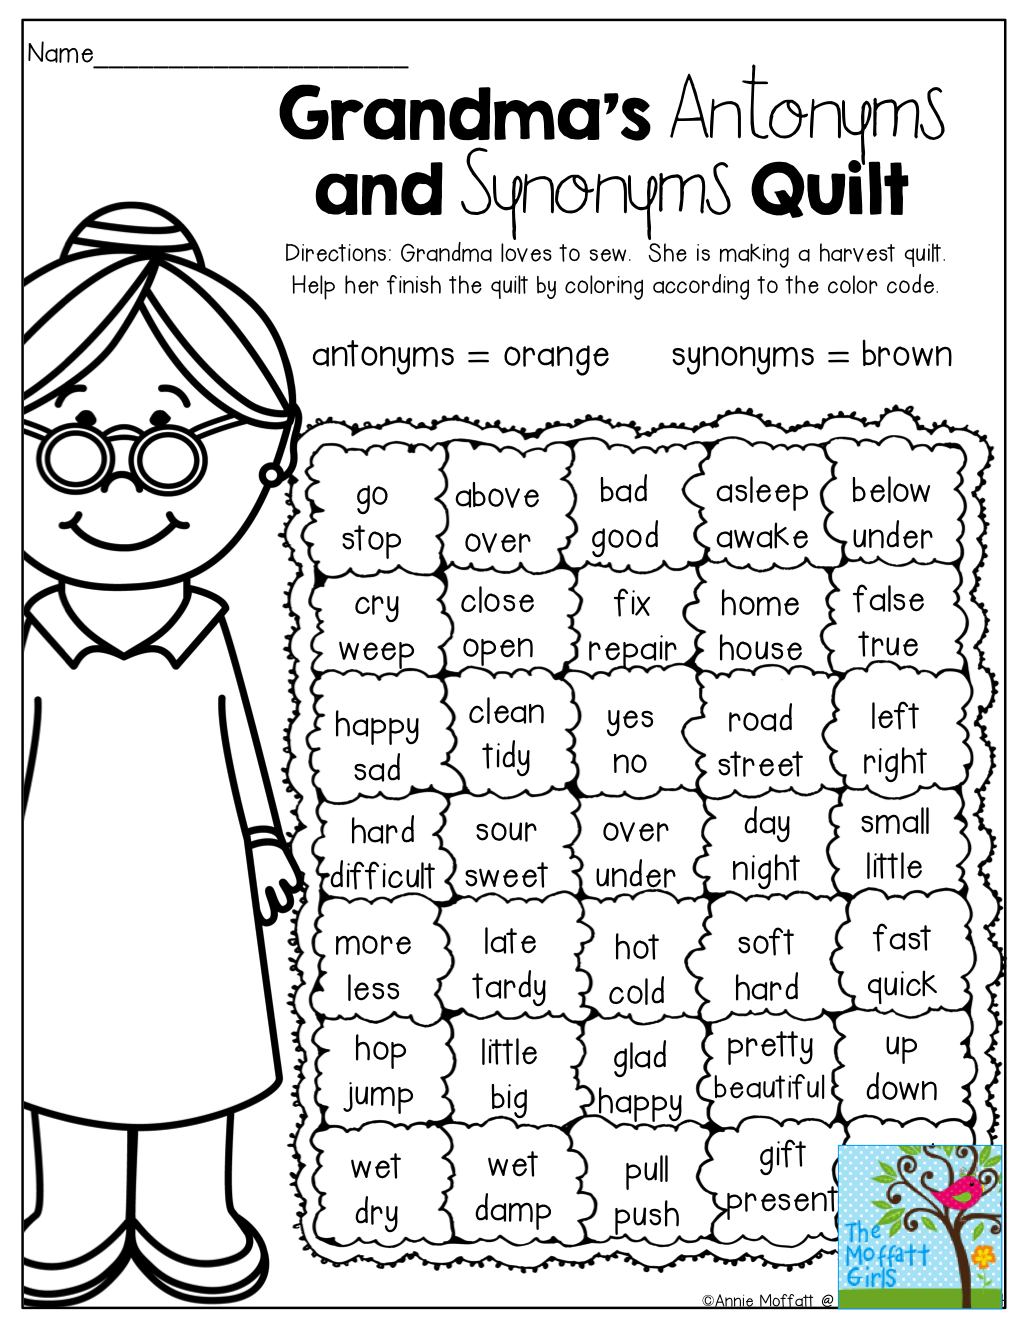 worksheet Identifying Synonyms And Antonyms Worksheets a fun way to review antonyms and synonyms education pinterest synonyms